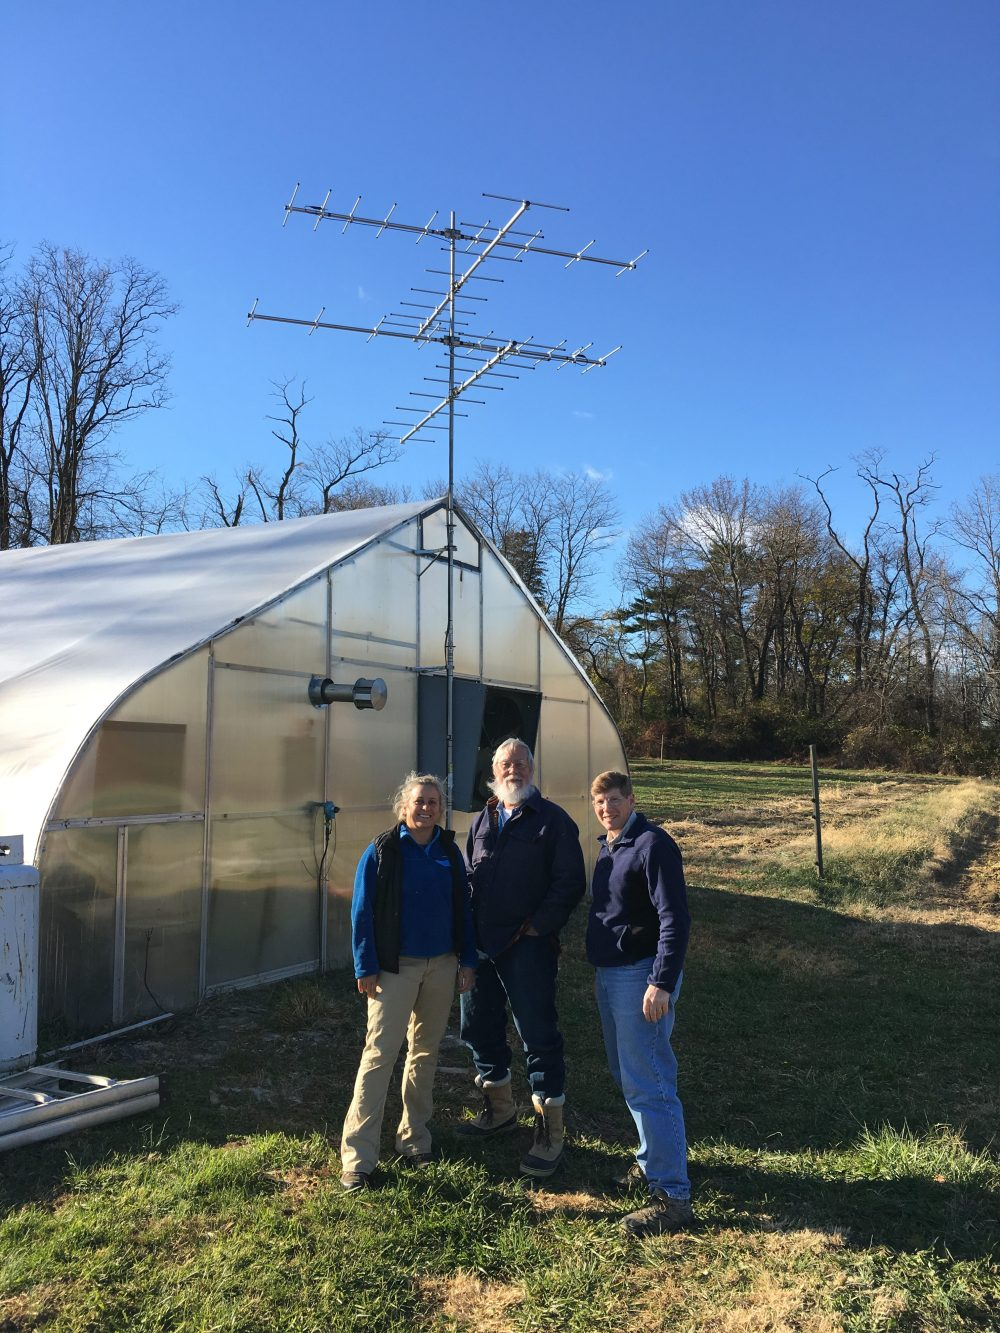 Lisa Kiziuk. Director of WCT Bird Conservation Program, Dave Brinker of Project Owlnet and Scott Weidensaul of Ned Smith Center for Nature and Art, in front of the Rushton Motus tower